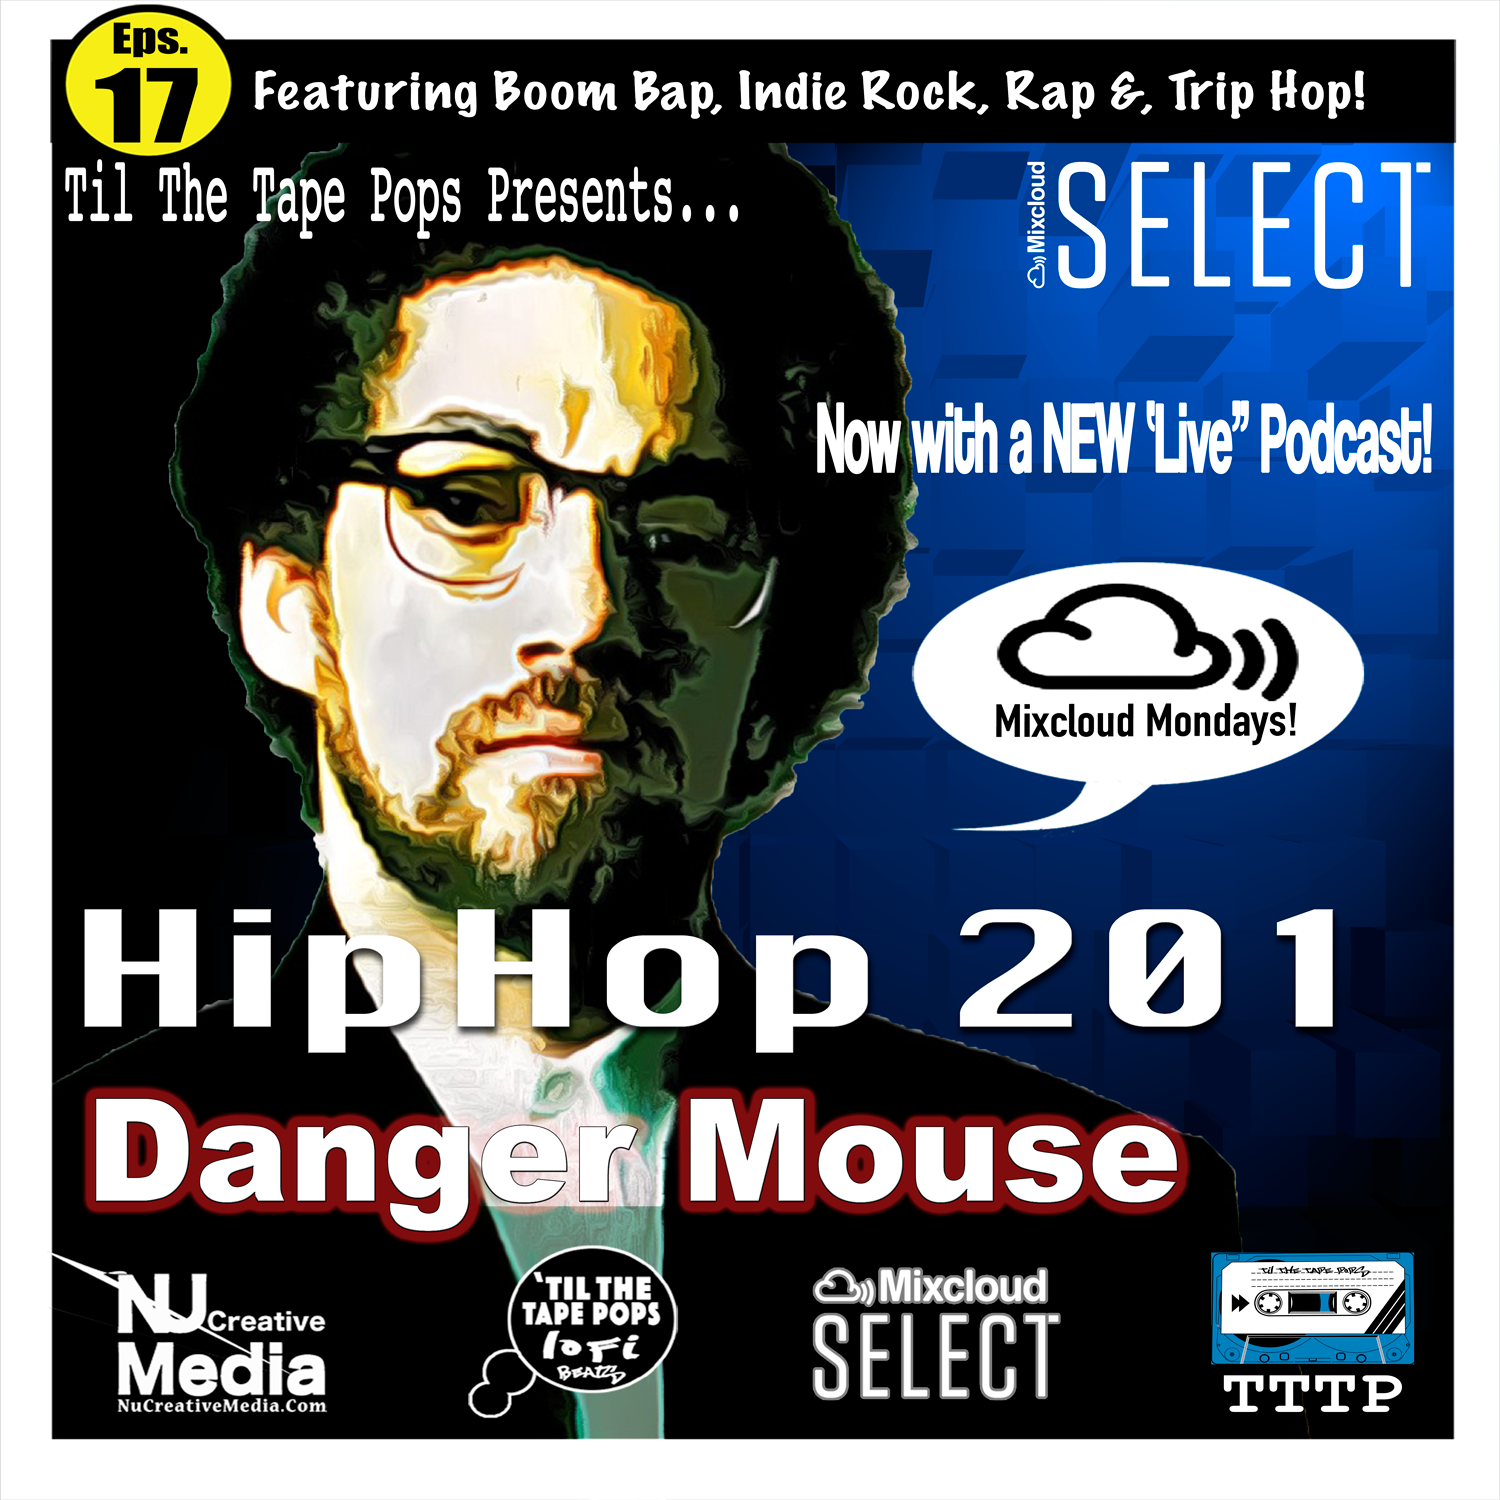 'Til The Tape Pops Presents.. Hip Hop 201